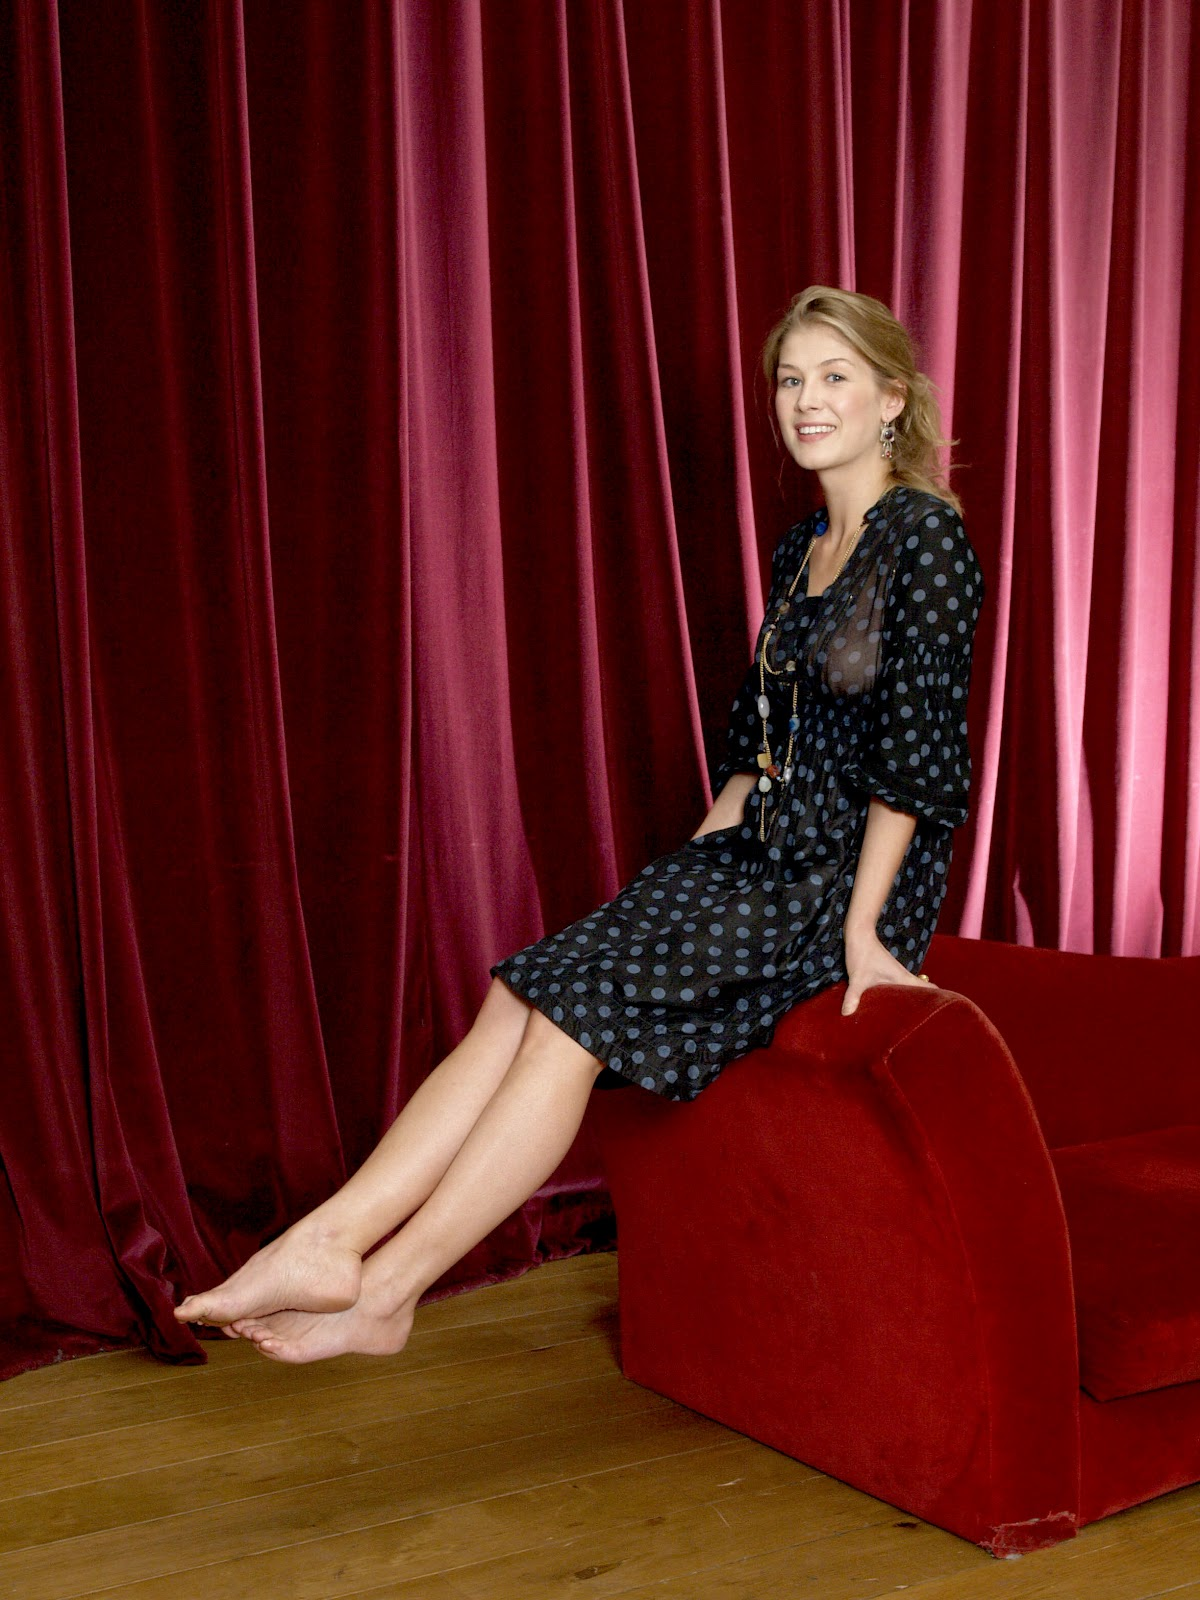 Feet Rosamund Pike nudes (57 photos), Pussy, Hot, Instagram, legs 2015